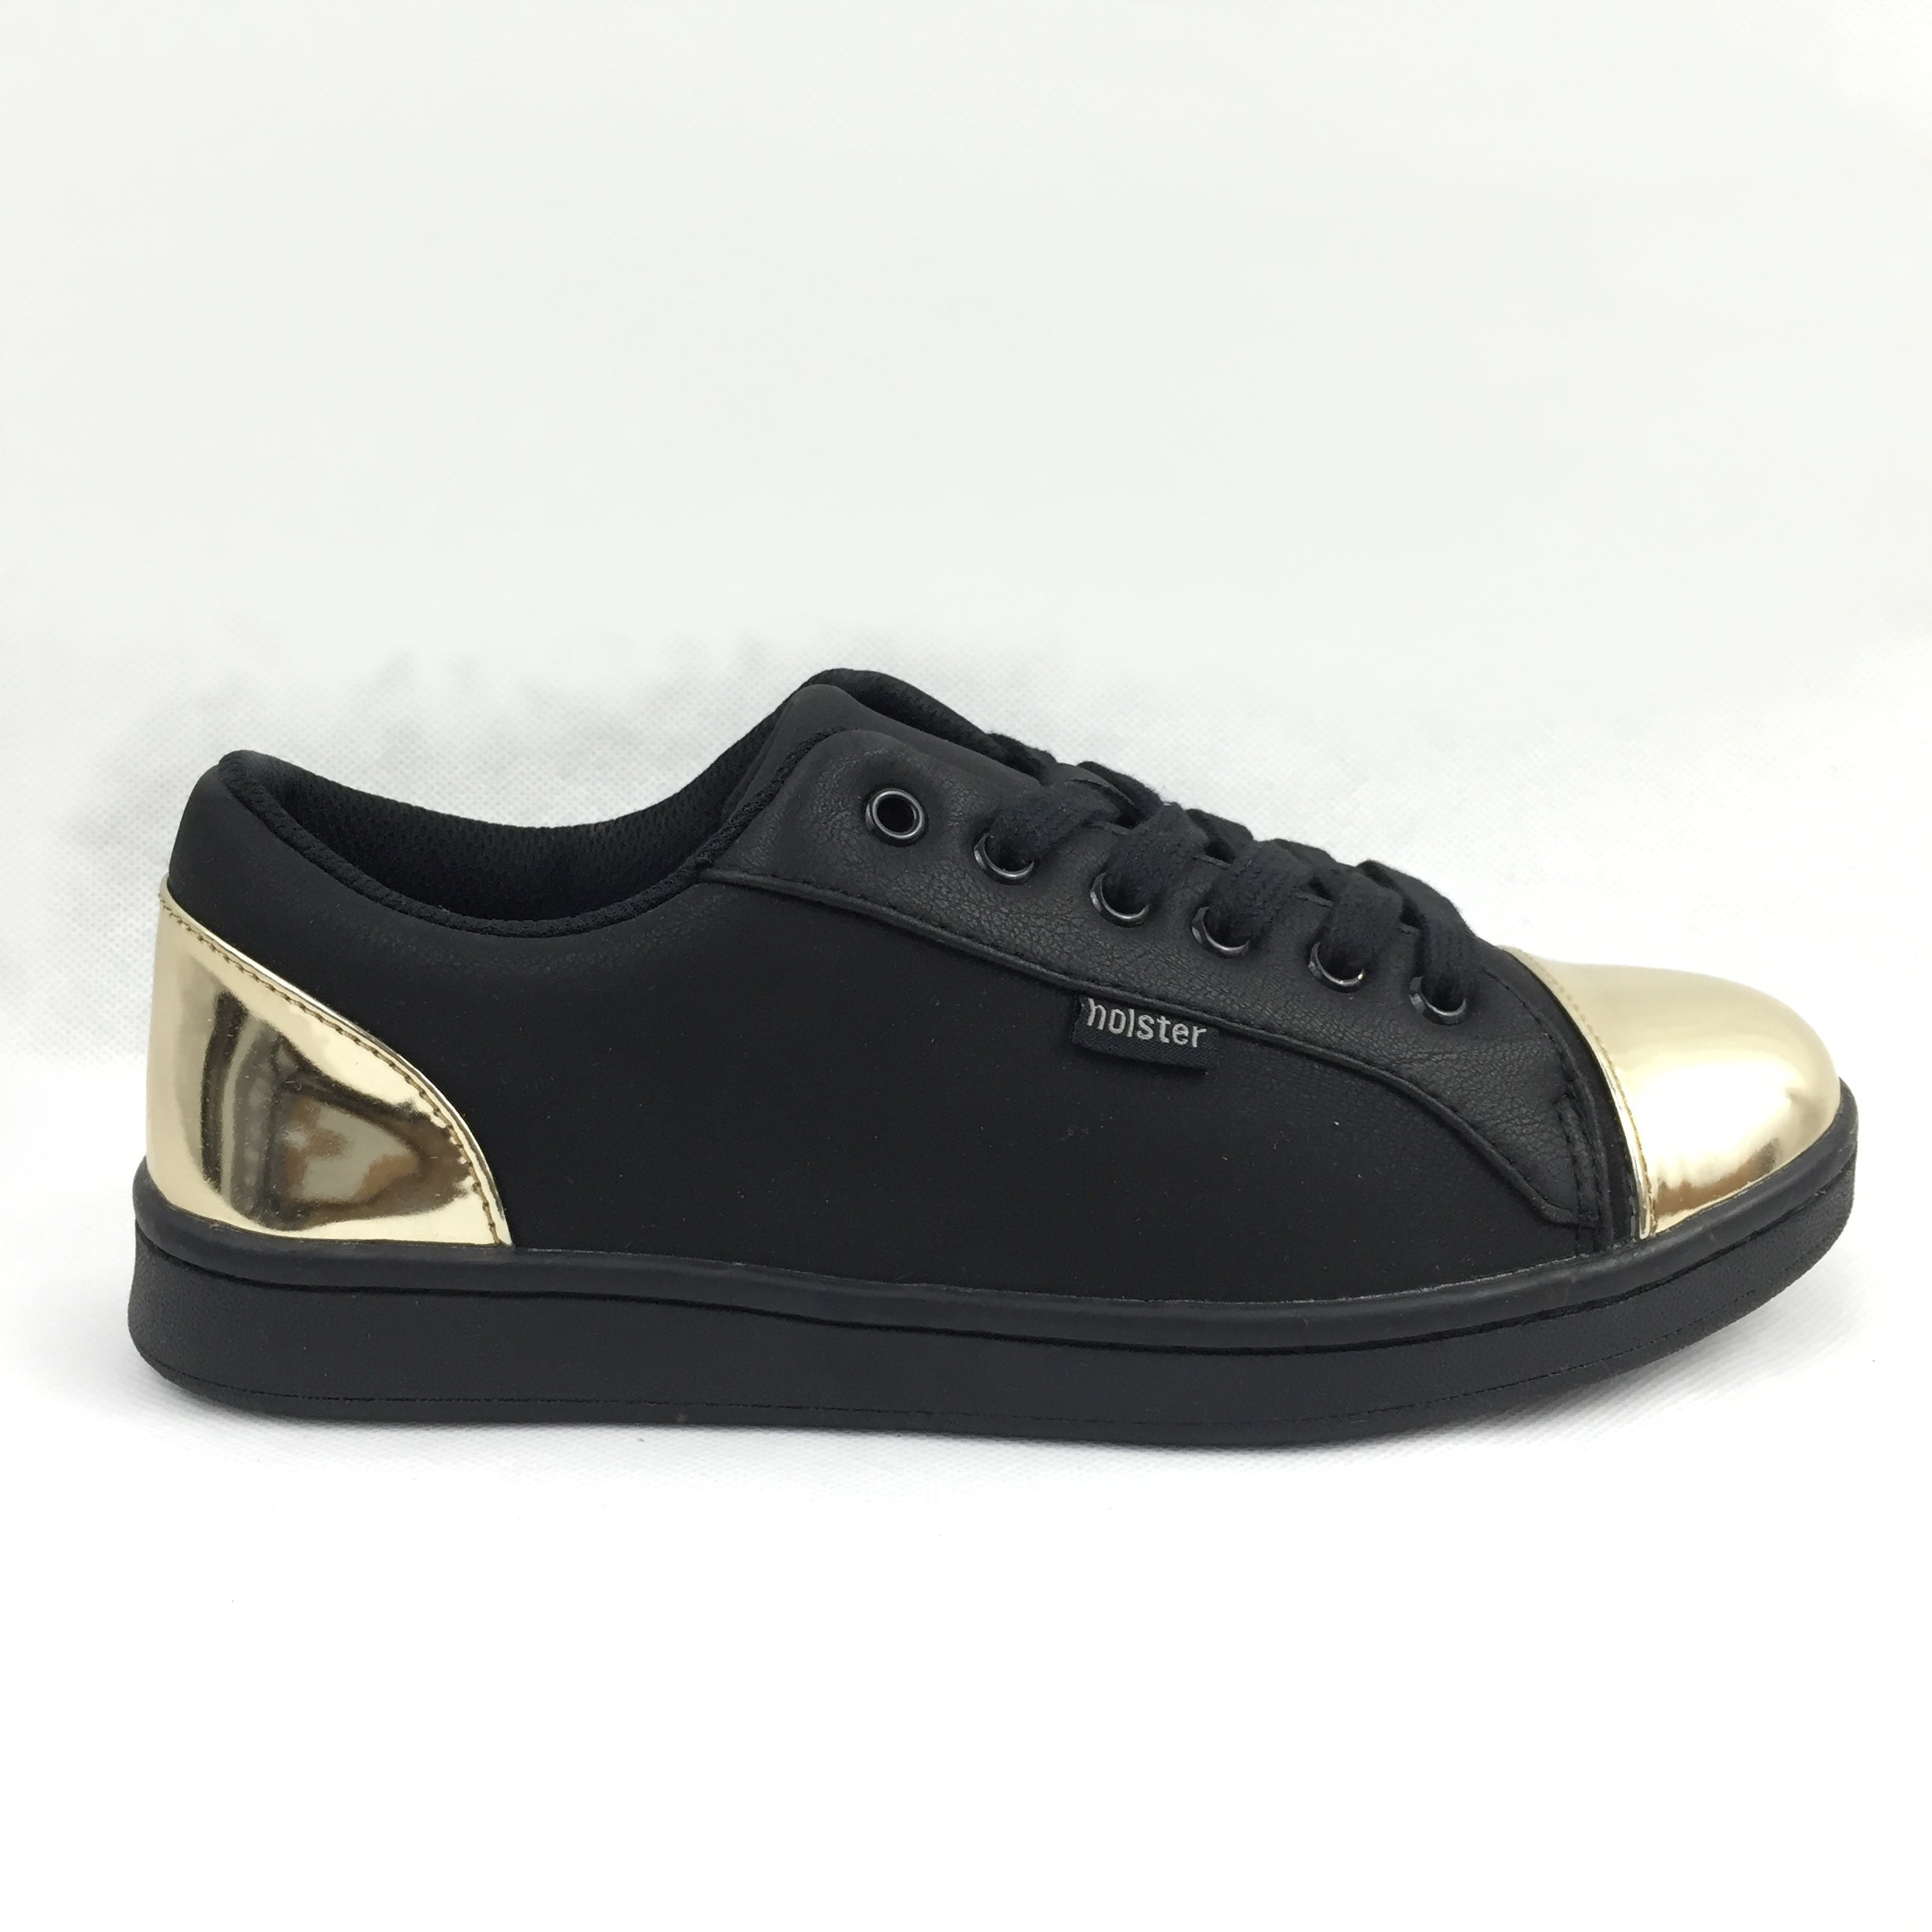 Holster black and gold trainer, Padded, lace up trainer. Gold toe and heel cap. Cherrypic